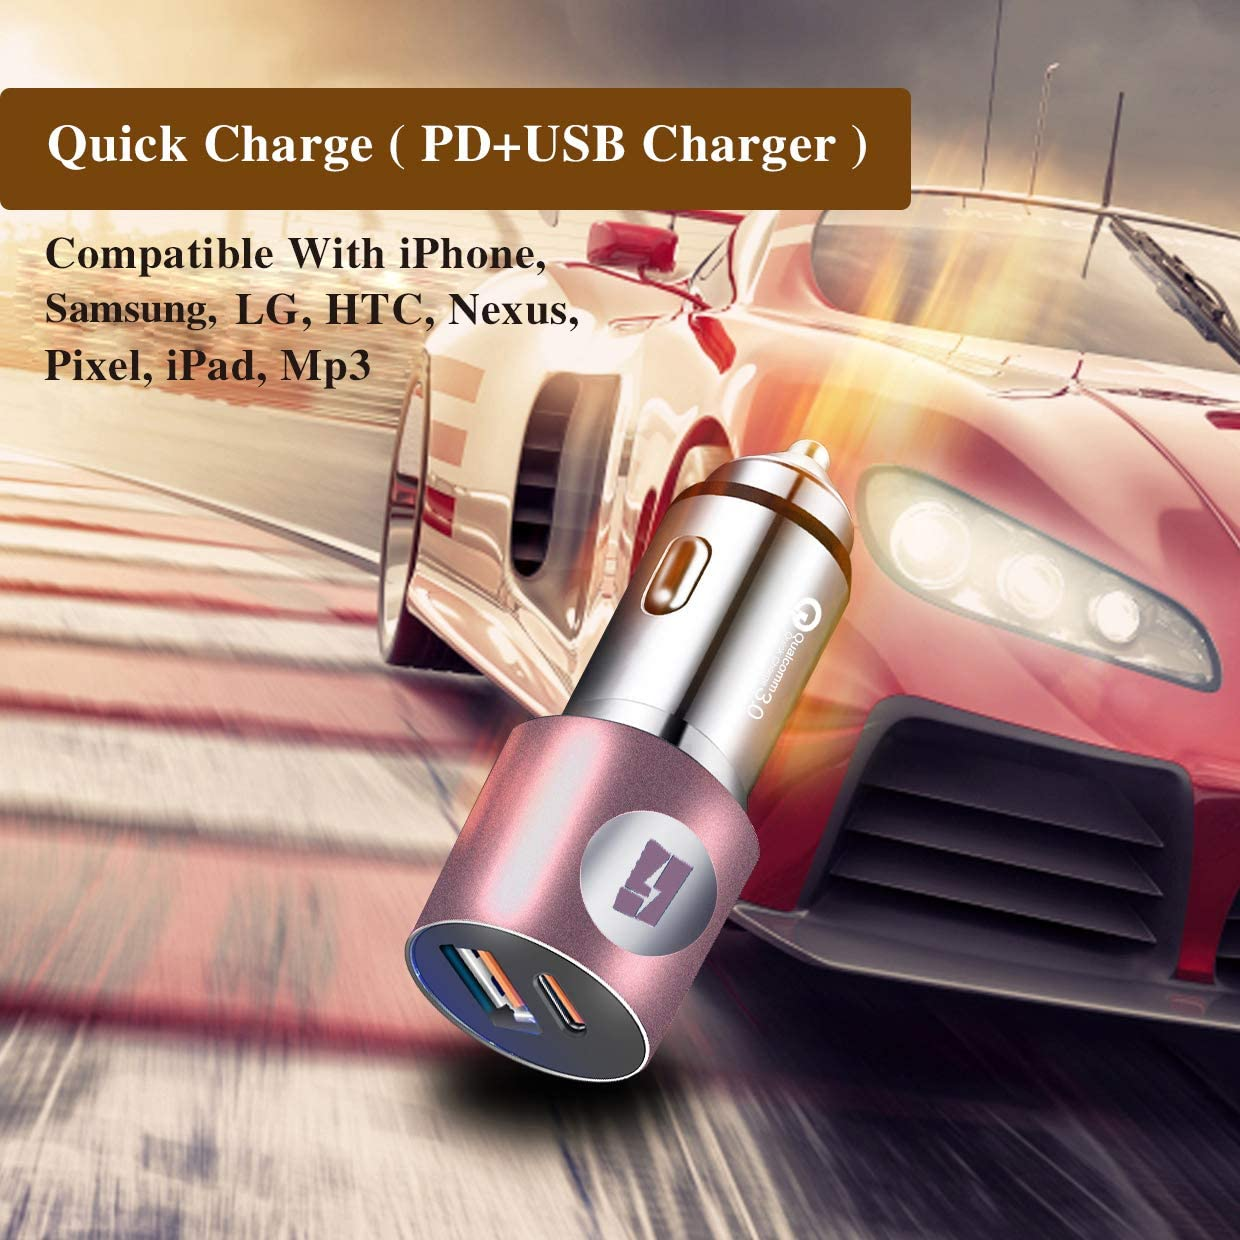 Quick Charge 3.0 Power Delivery Samsung 24W Dual Port for Most Phones Rose Gold Global Gate Car Phone Charger LG and Tablets iPhone